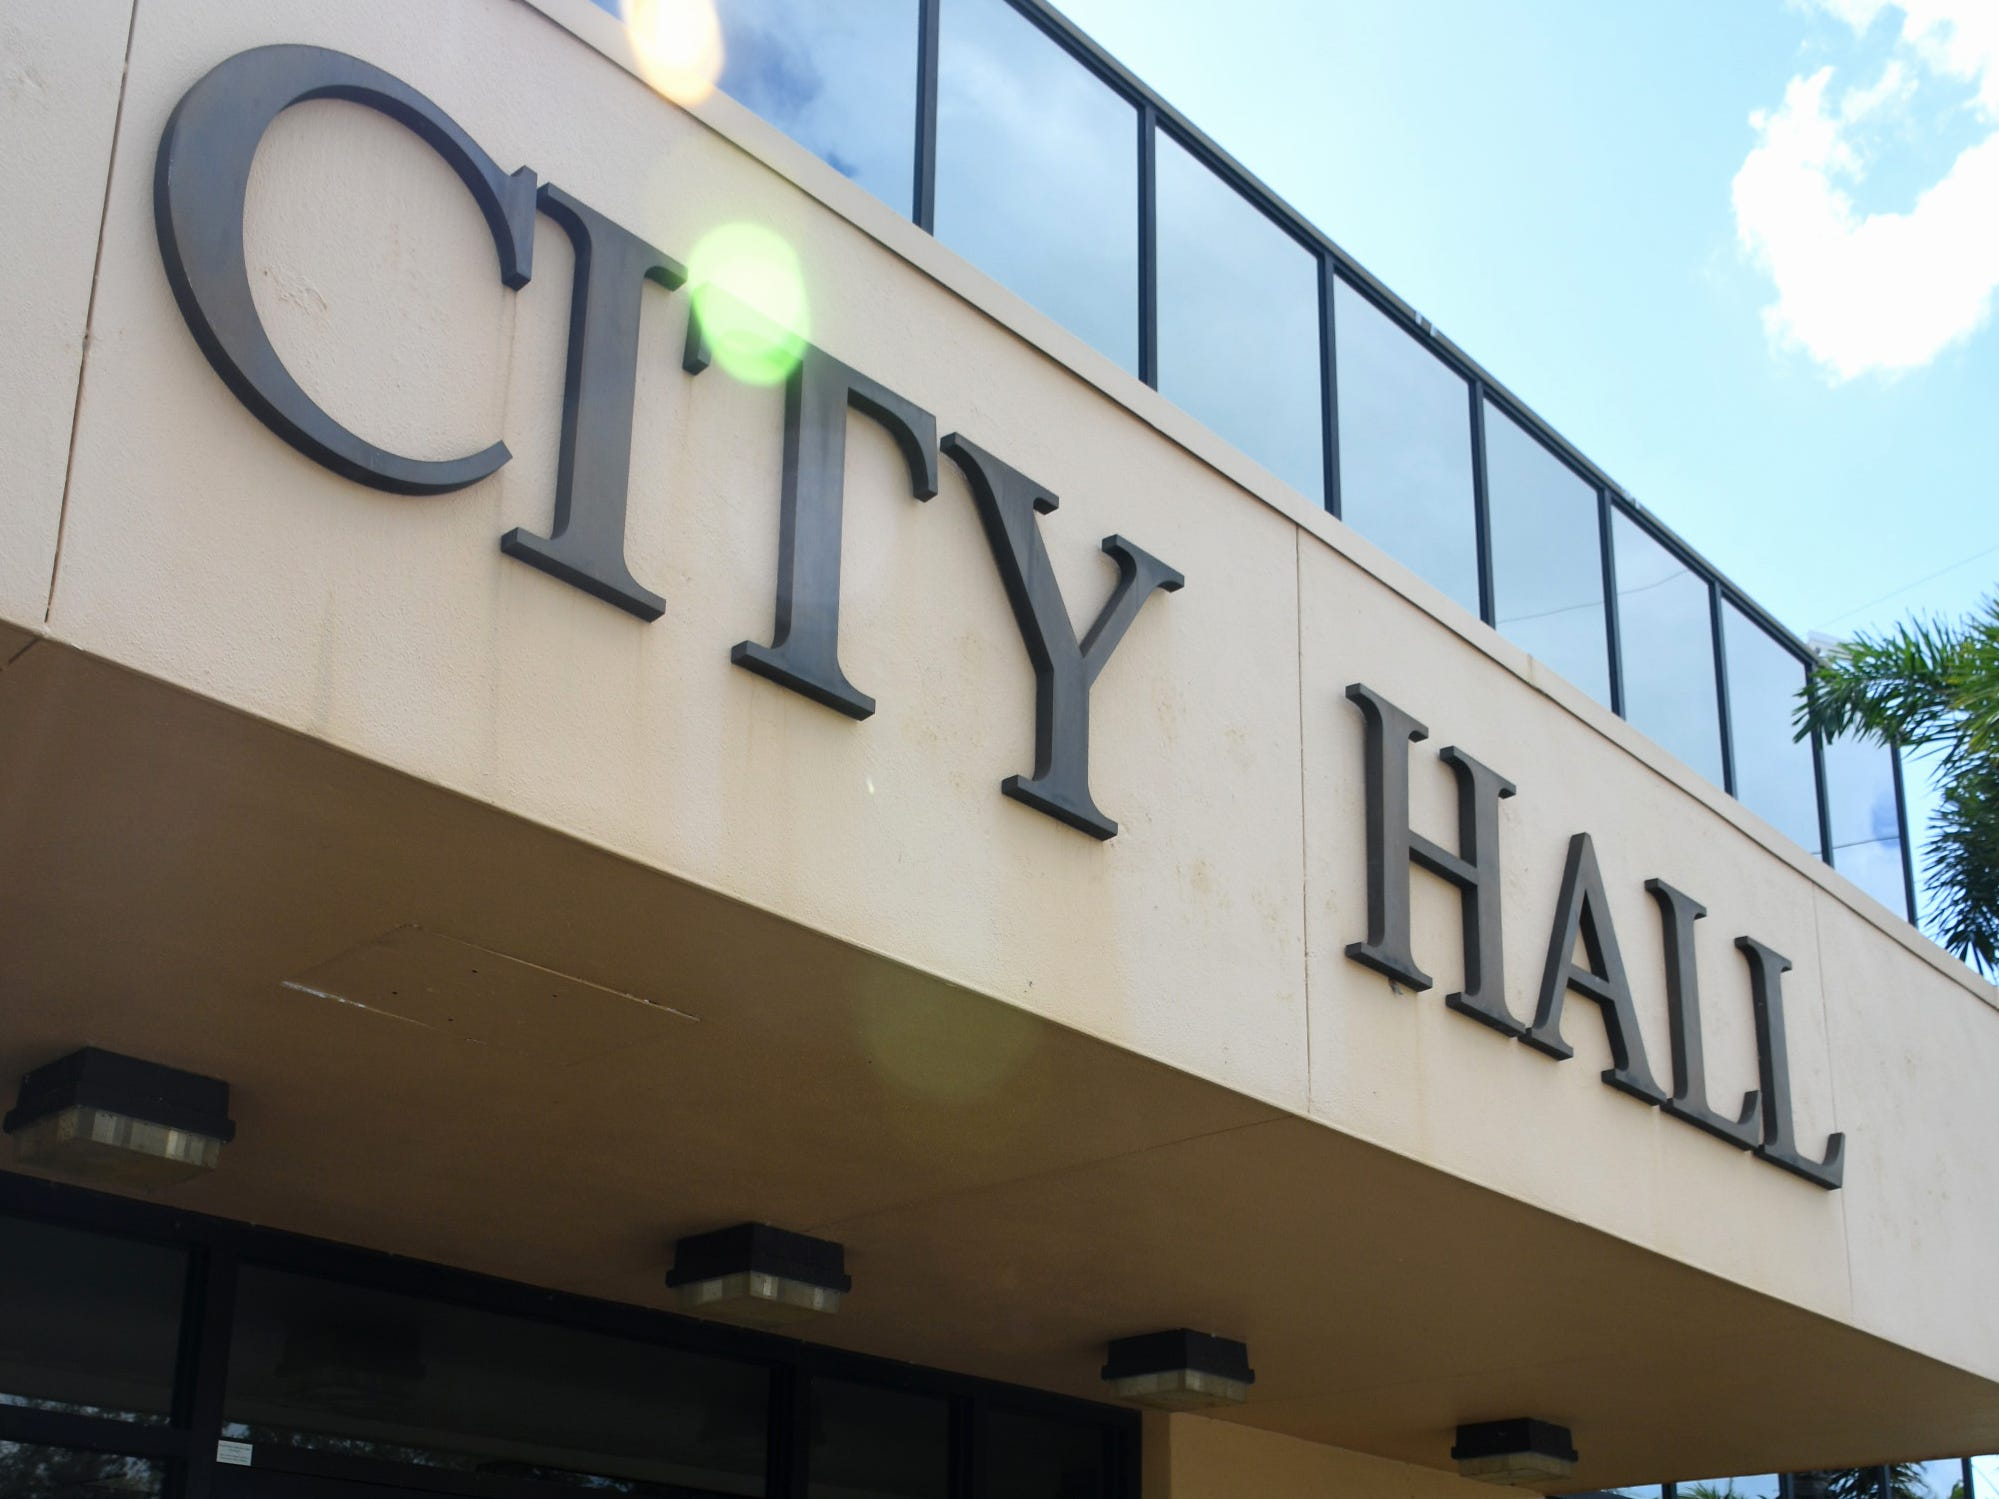 Monday's Marco Island City Council meeting could set the tone for big changes in 2019